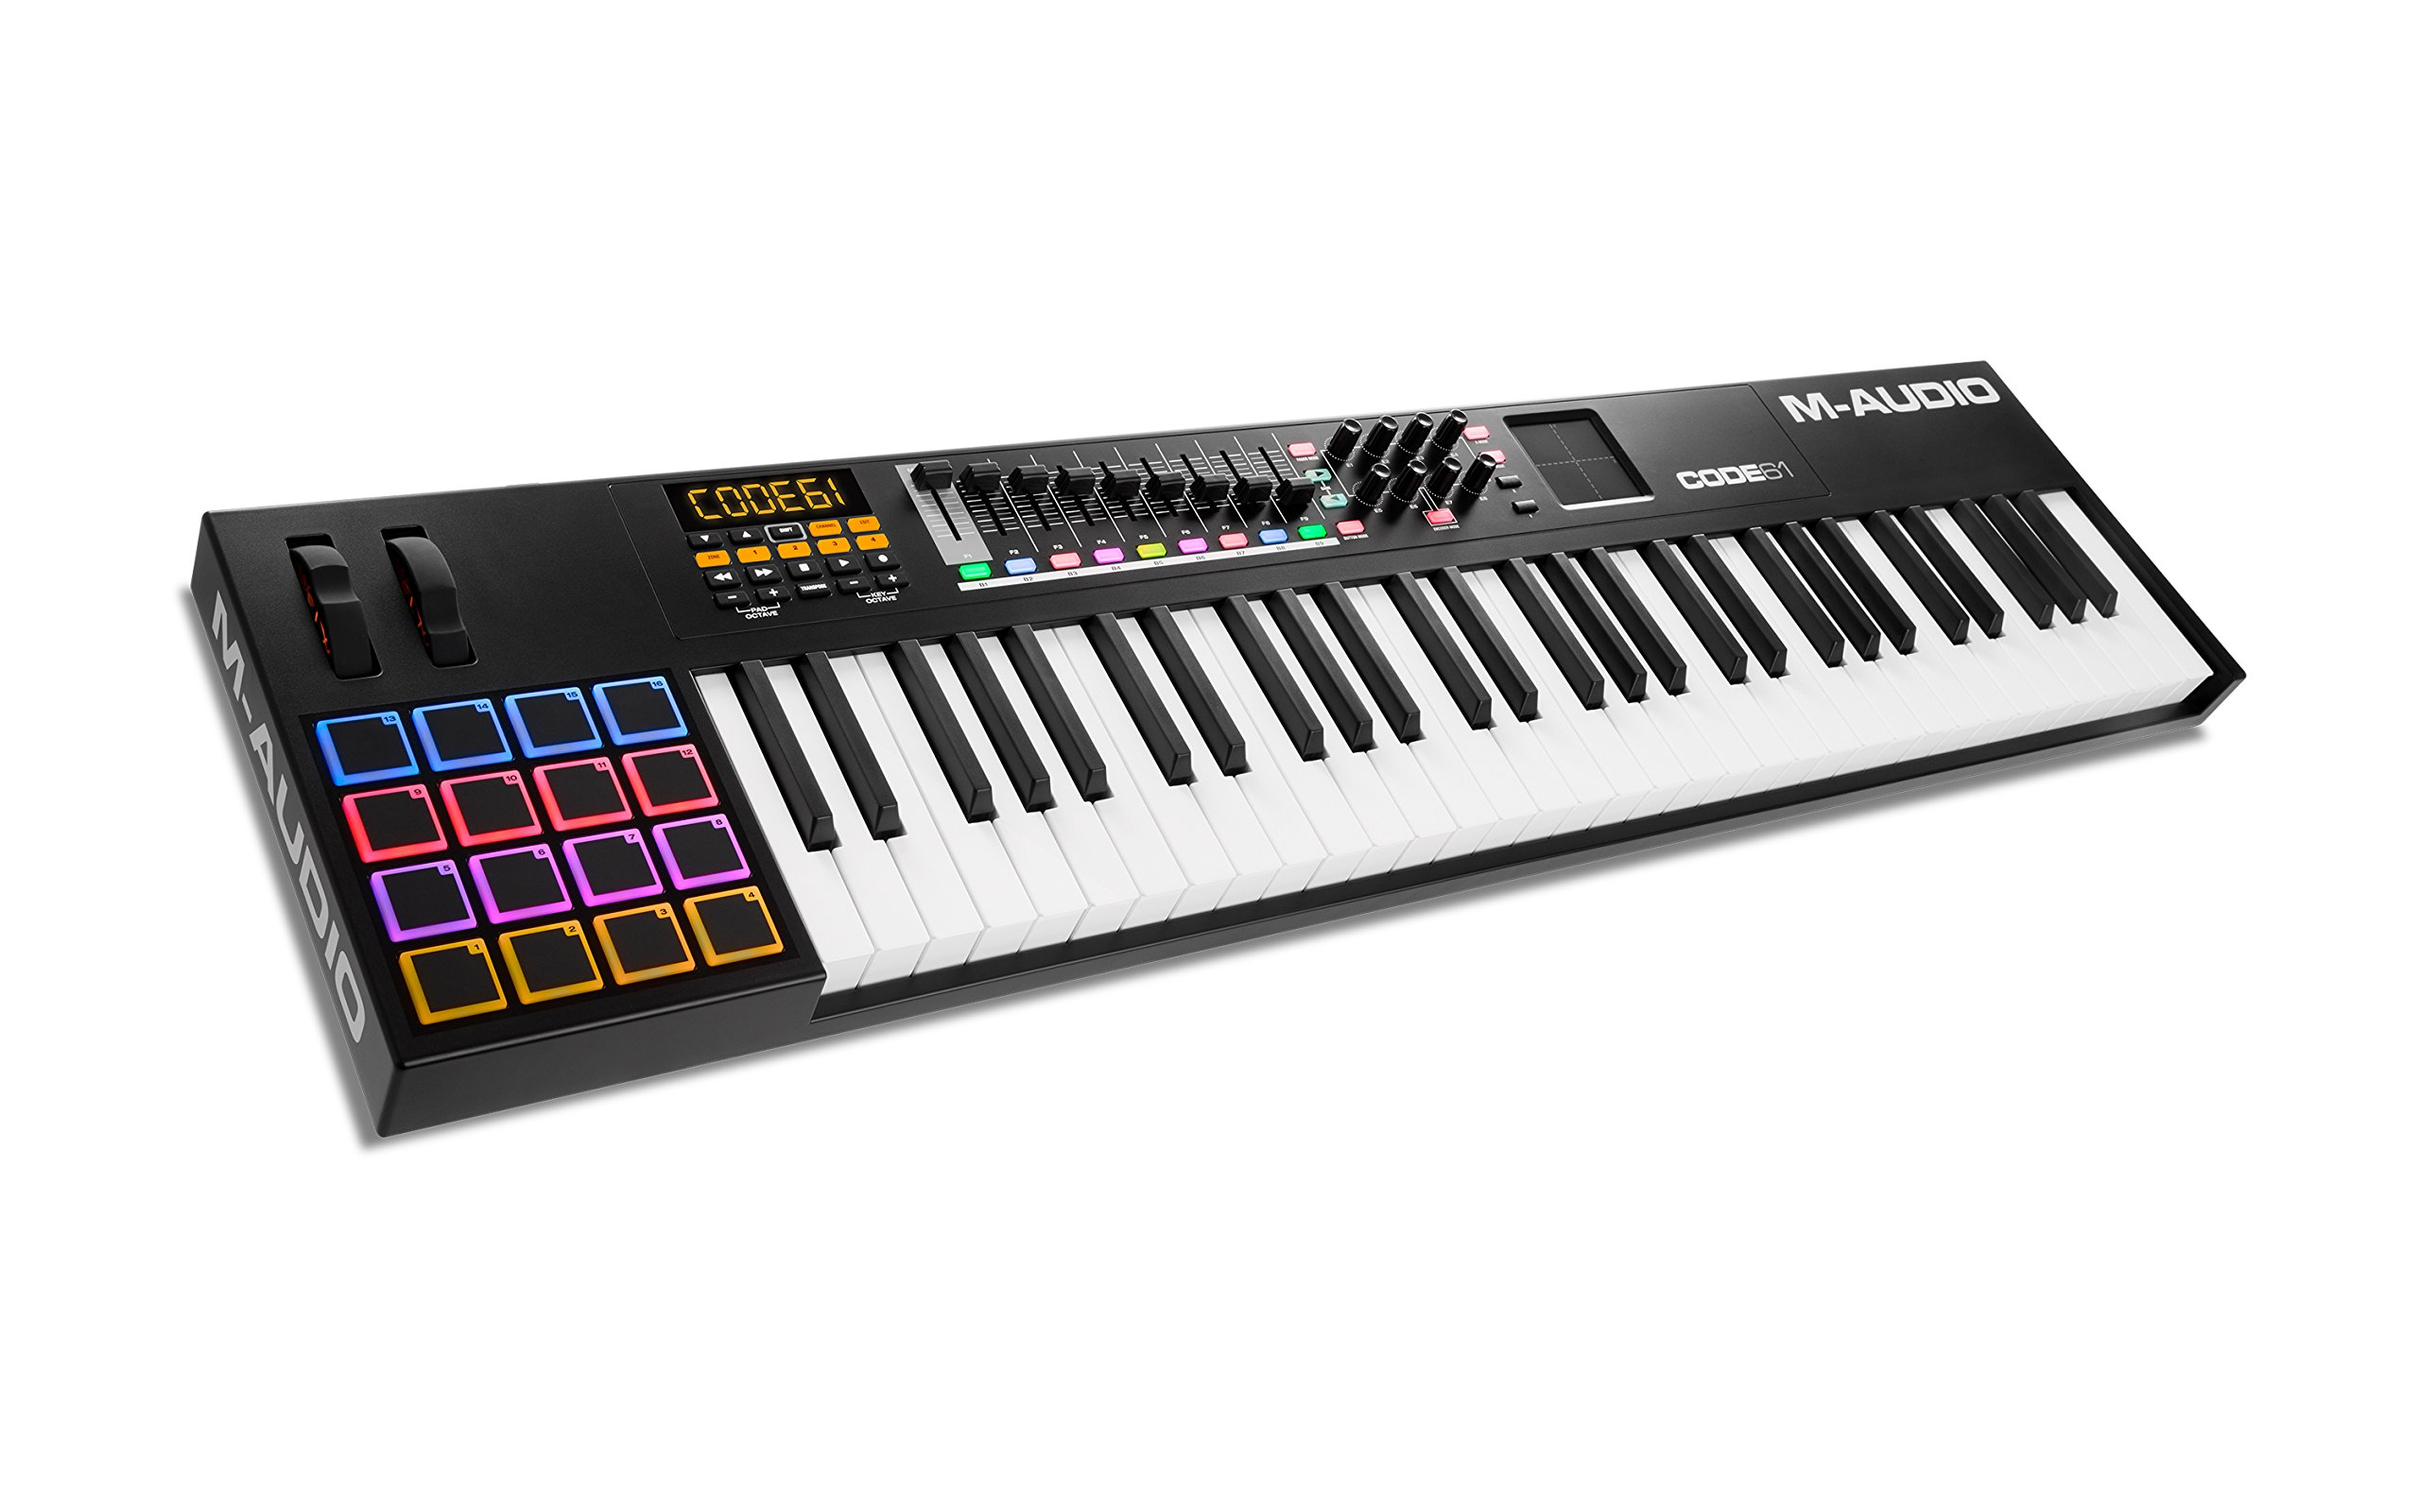 M-Audio Code 61 (Black) | USB MIDI Controller With 61-Key Velocity Sensitive Keybed, X/Y Pad, 16 Velocity Sensitive Trigger Pads & A Full-Consignment of Production/Performance Ready Controls by M-Audio